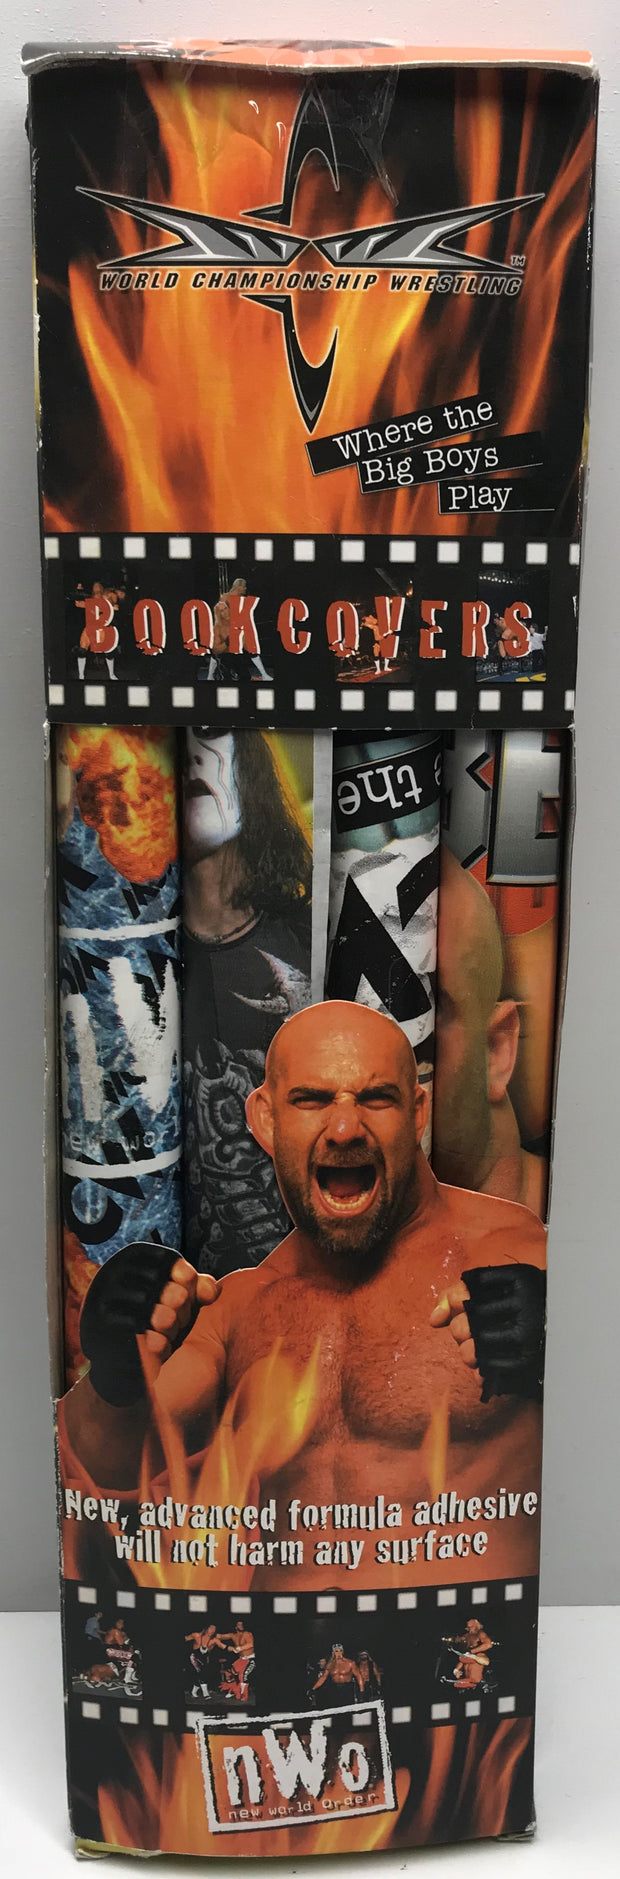 TAS037941 - 2000 WCW Wrestling Book Covers - Goldberg